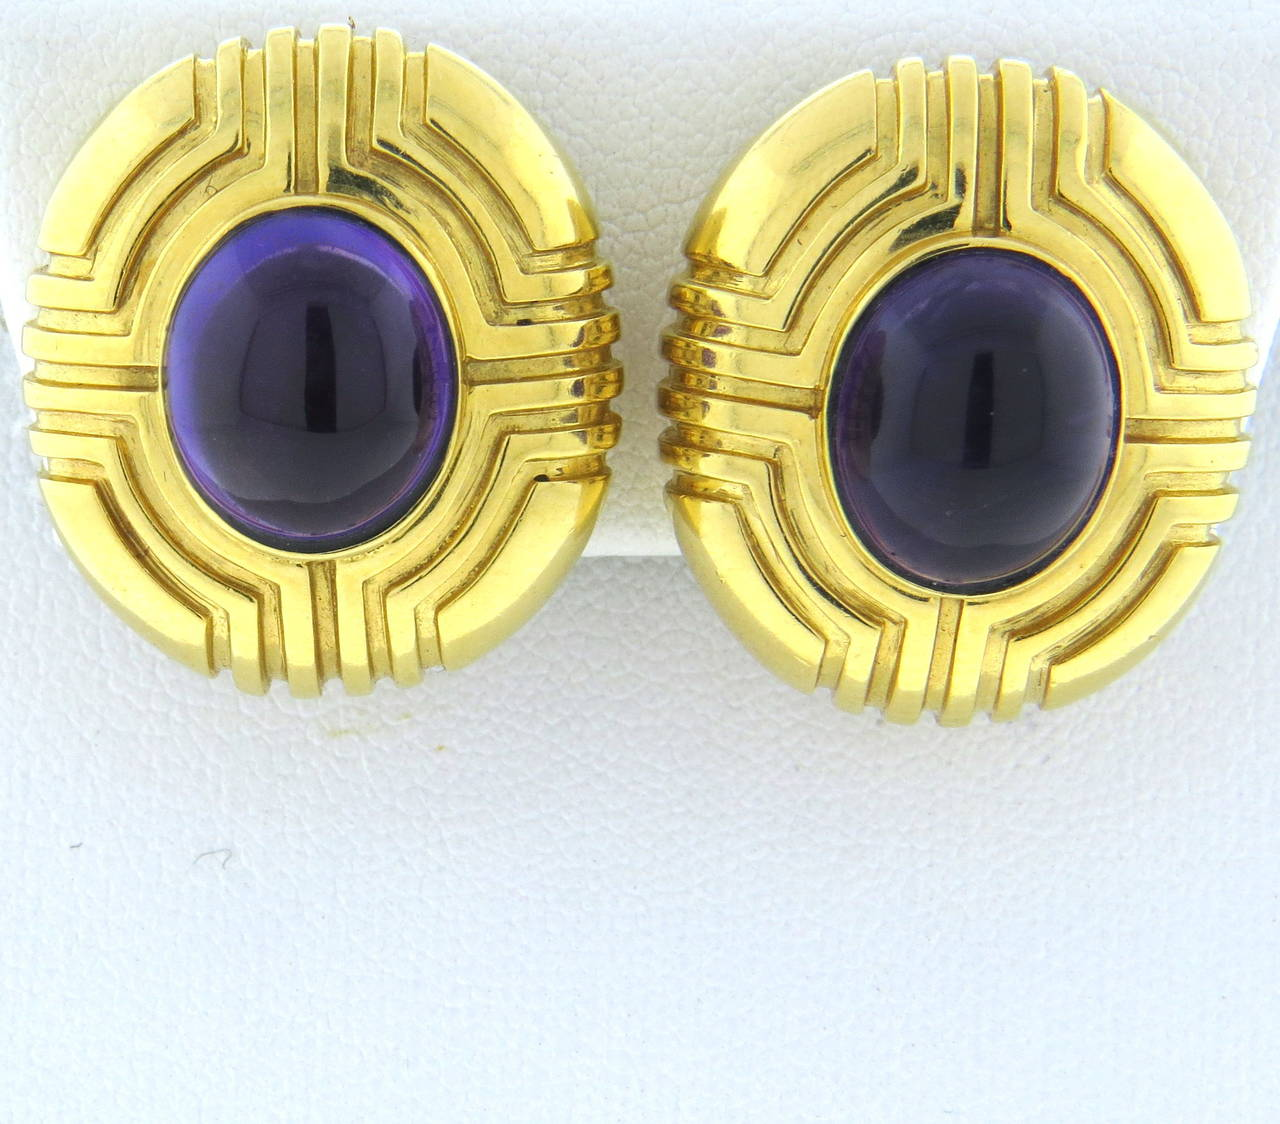 Tiffany & Co. 18k gold earrings,set with oval amethyst cabochons. Earrings measure 24mm x 21mm. Marked Tiffany & Co and 18k. weight - 23.9gr